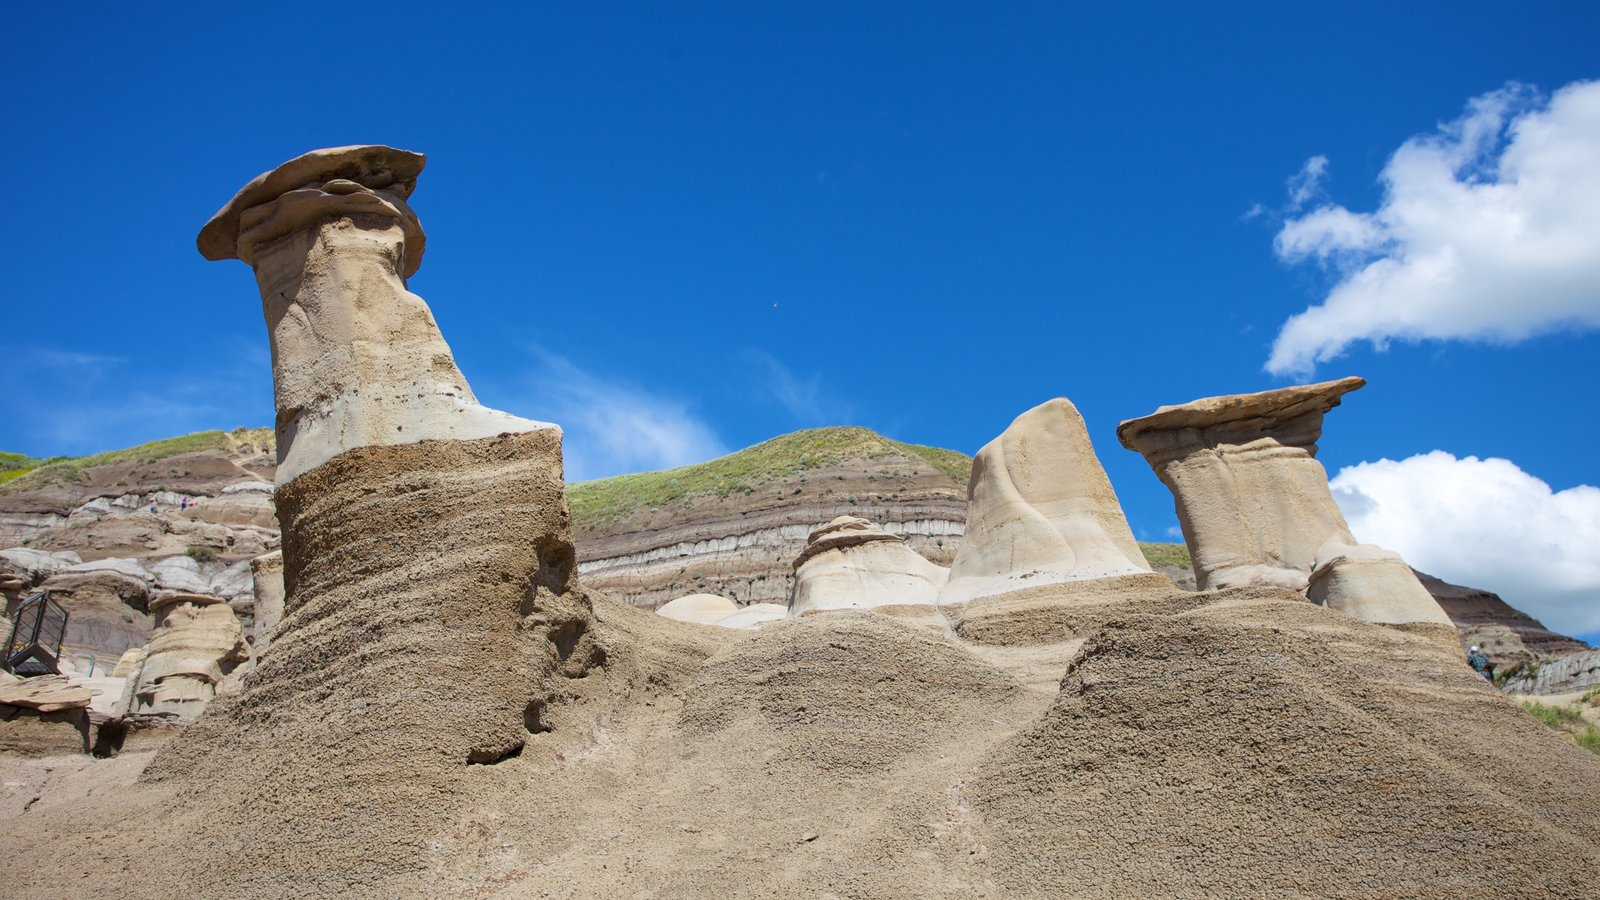 Drumheller featuring a gorge or canyon